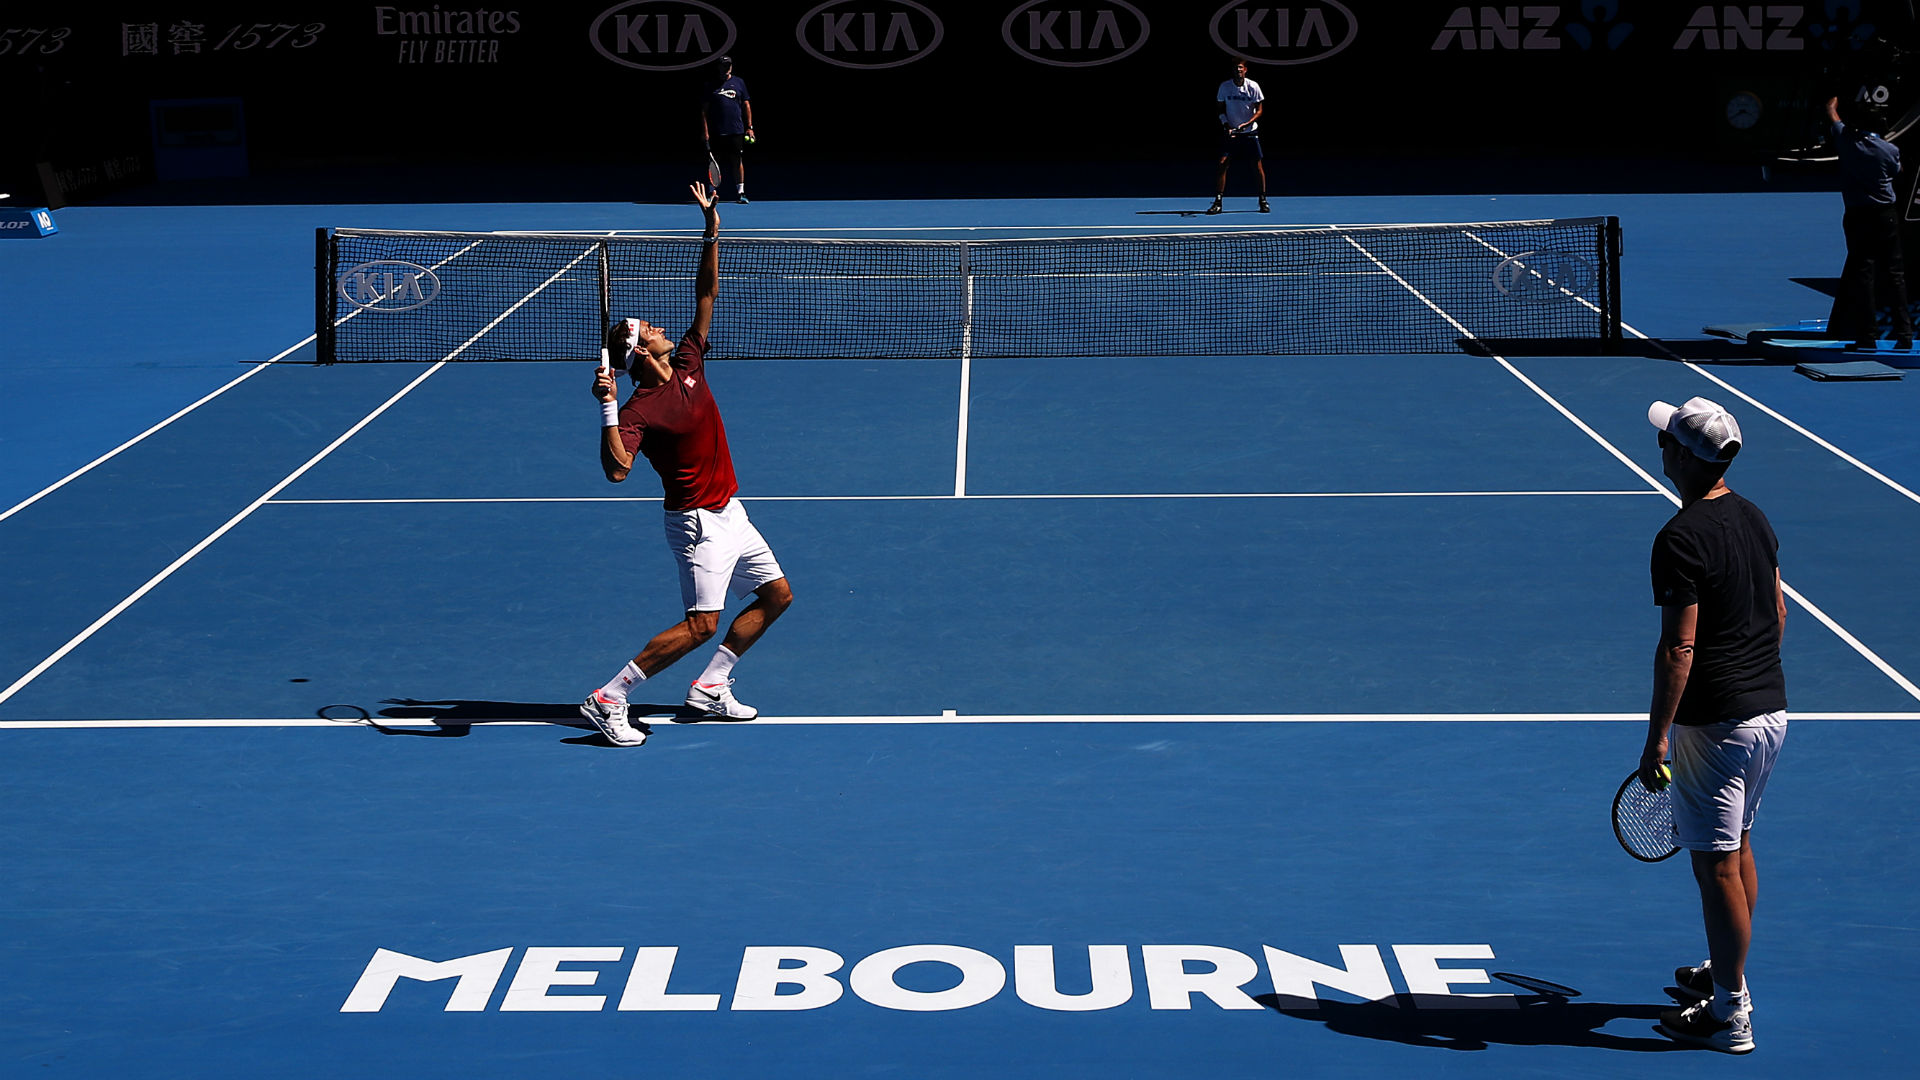 Australian Open 2019: Live results, scores from quarterfinals at tennis' first Grand Slam